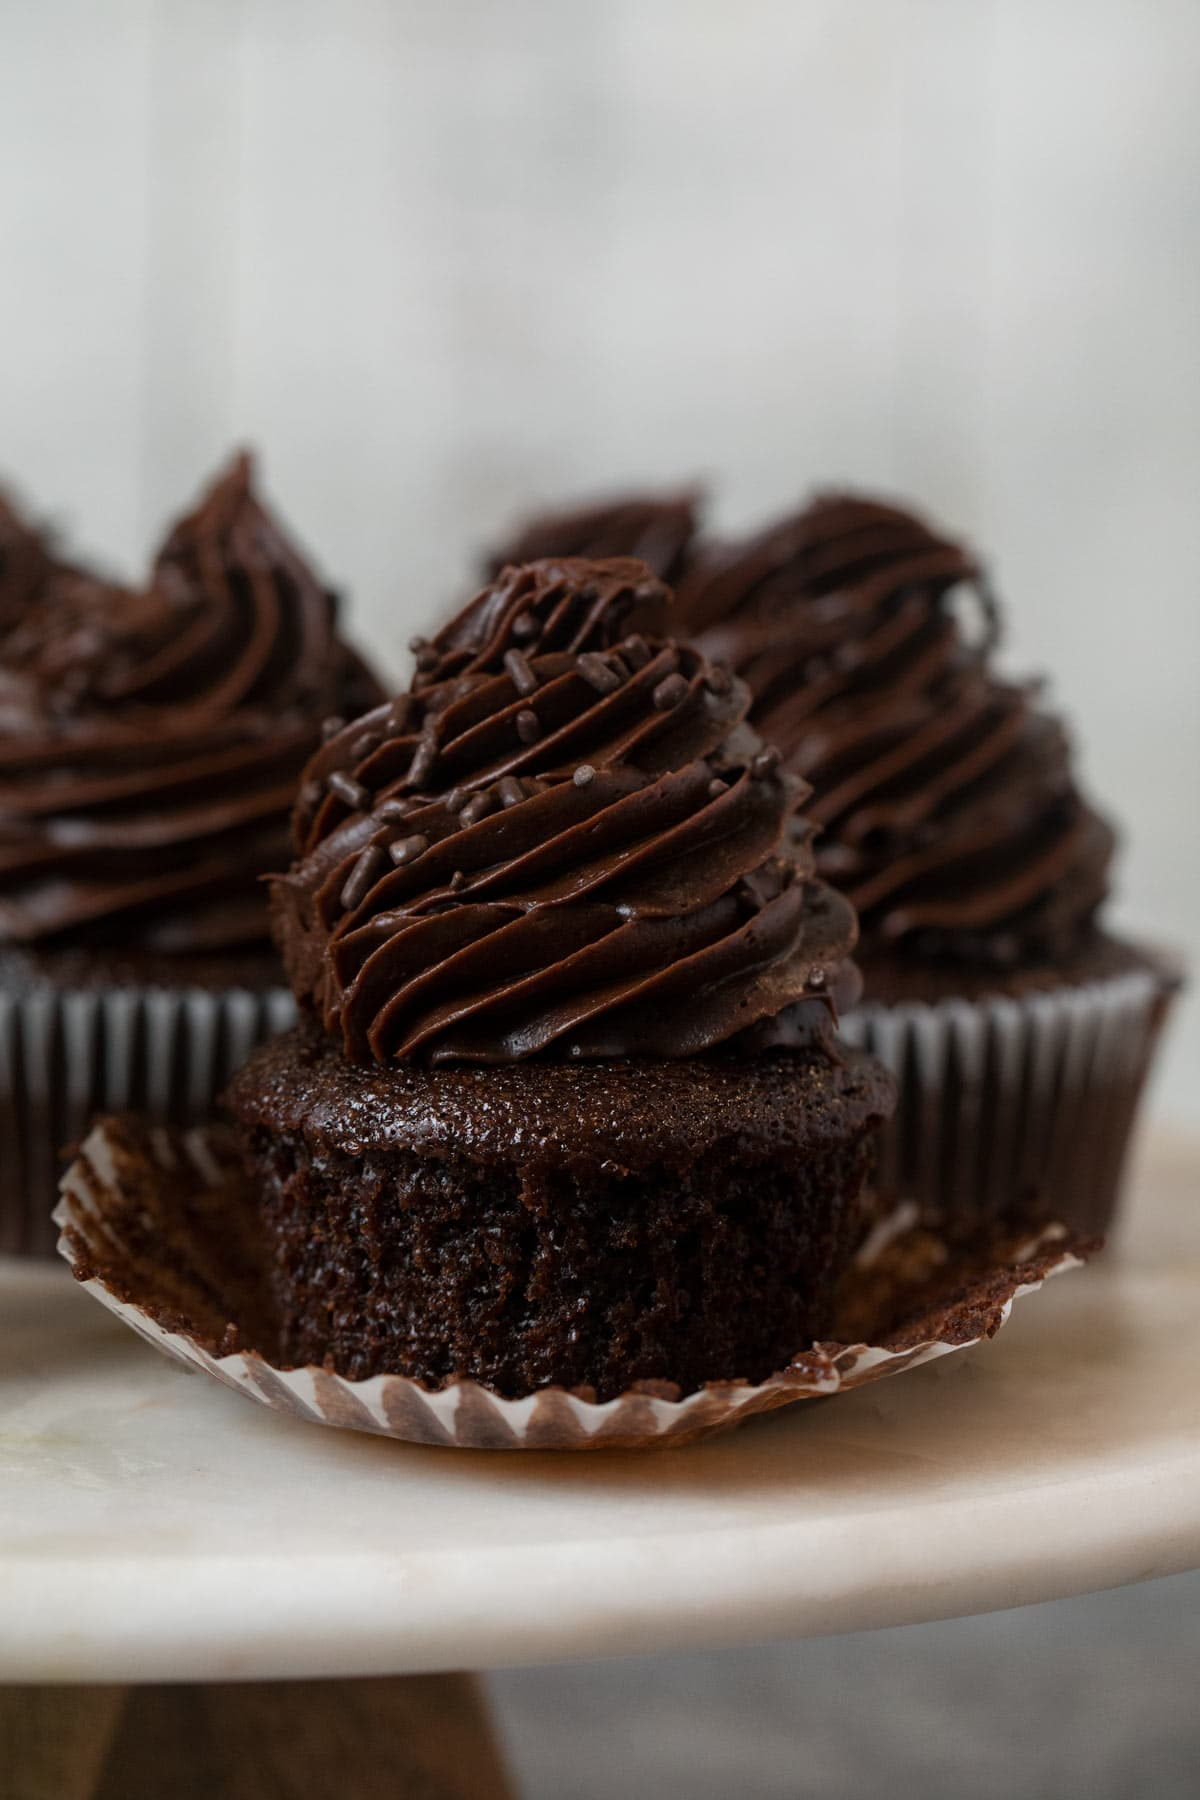 Chocolate Cupcake with Chocolate Frosting on cake stand with cupcake liner removed